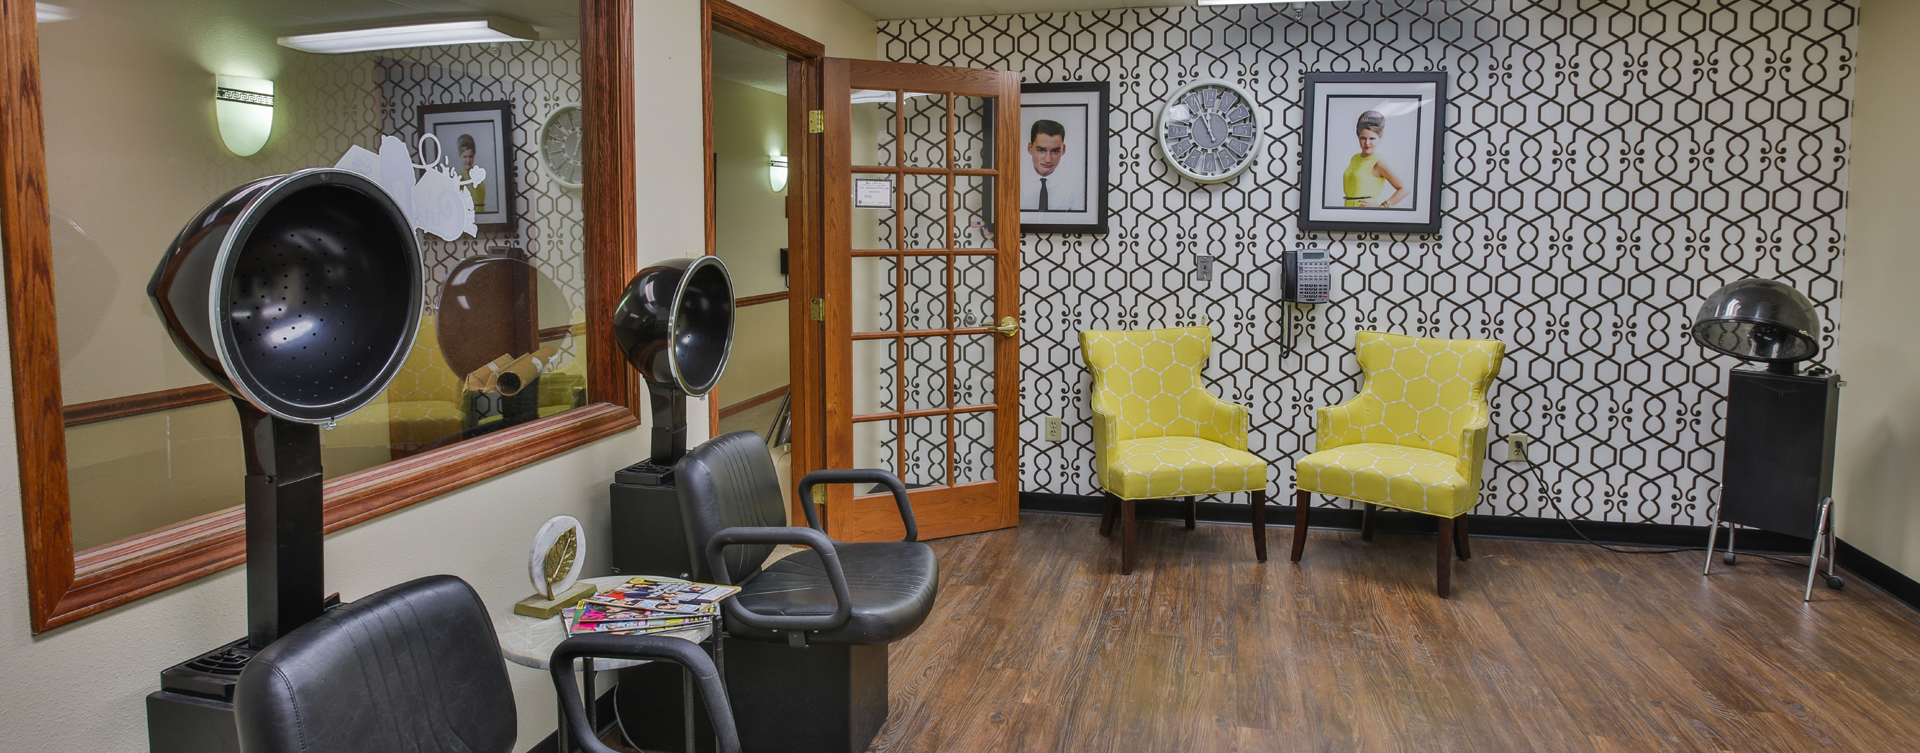 Receive personalized, at-home treatment from our stylist in the salon at Bickford of Peoria